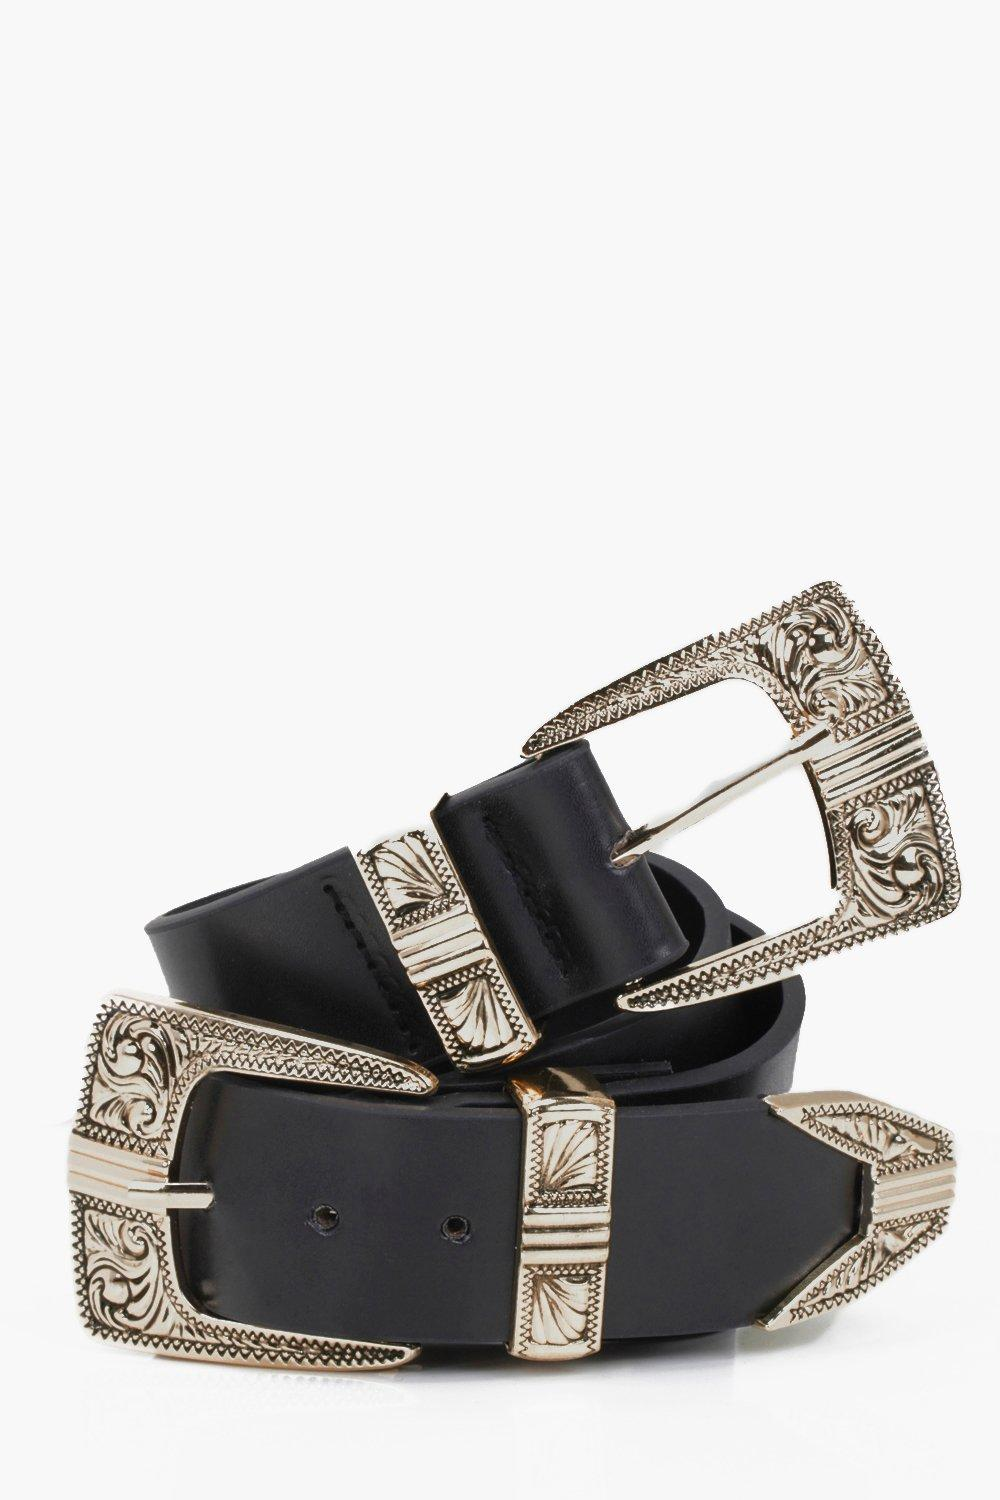 Double Buckle Western Belt - black - Customise you